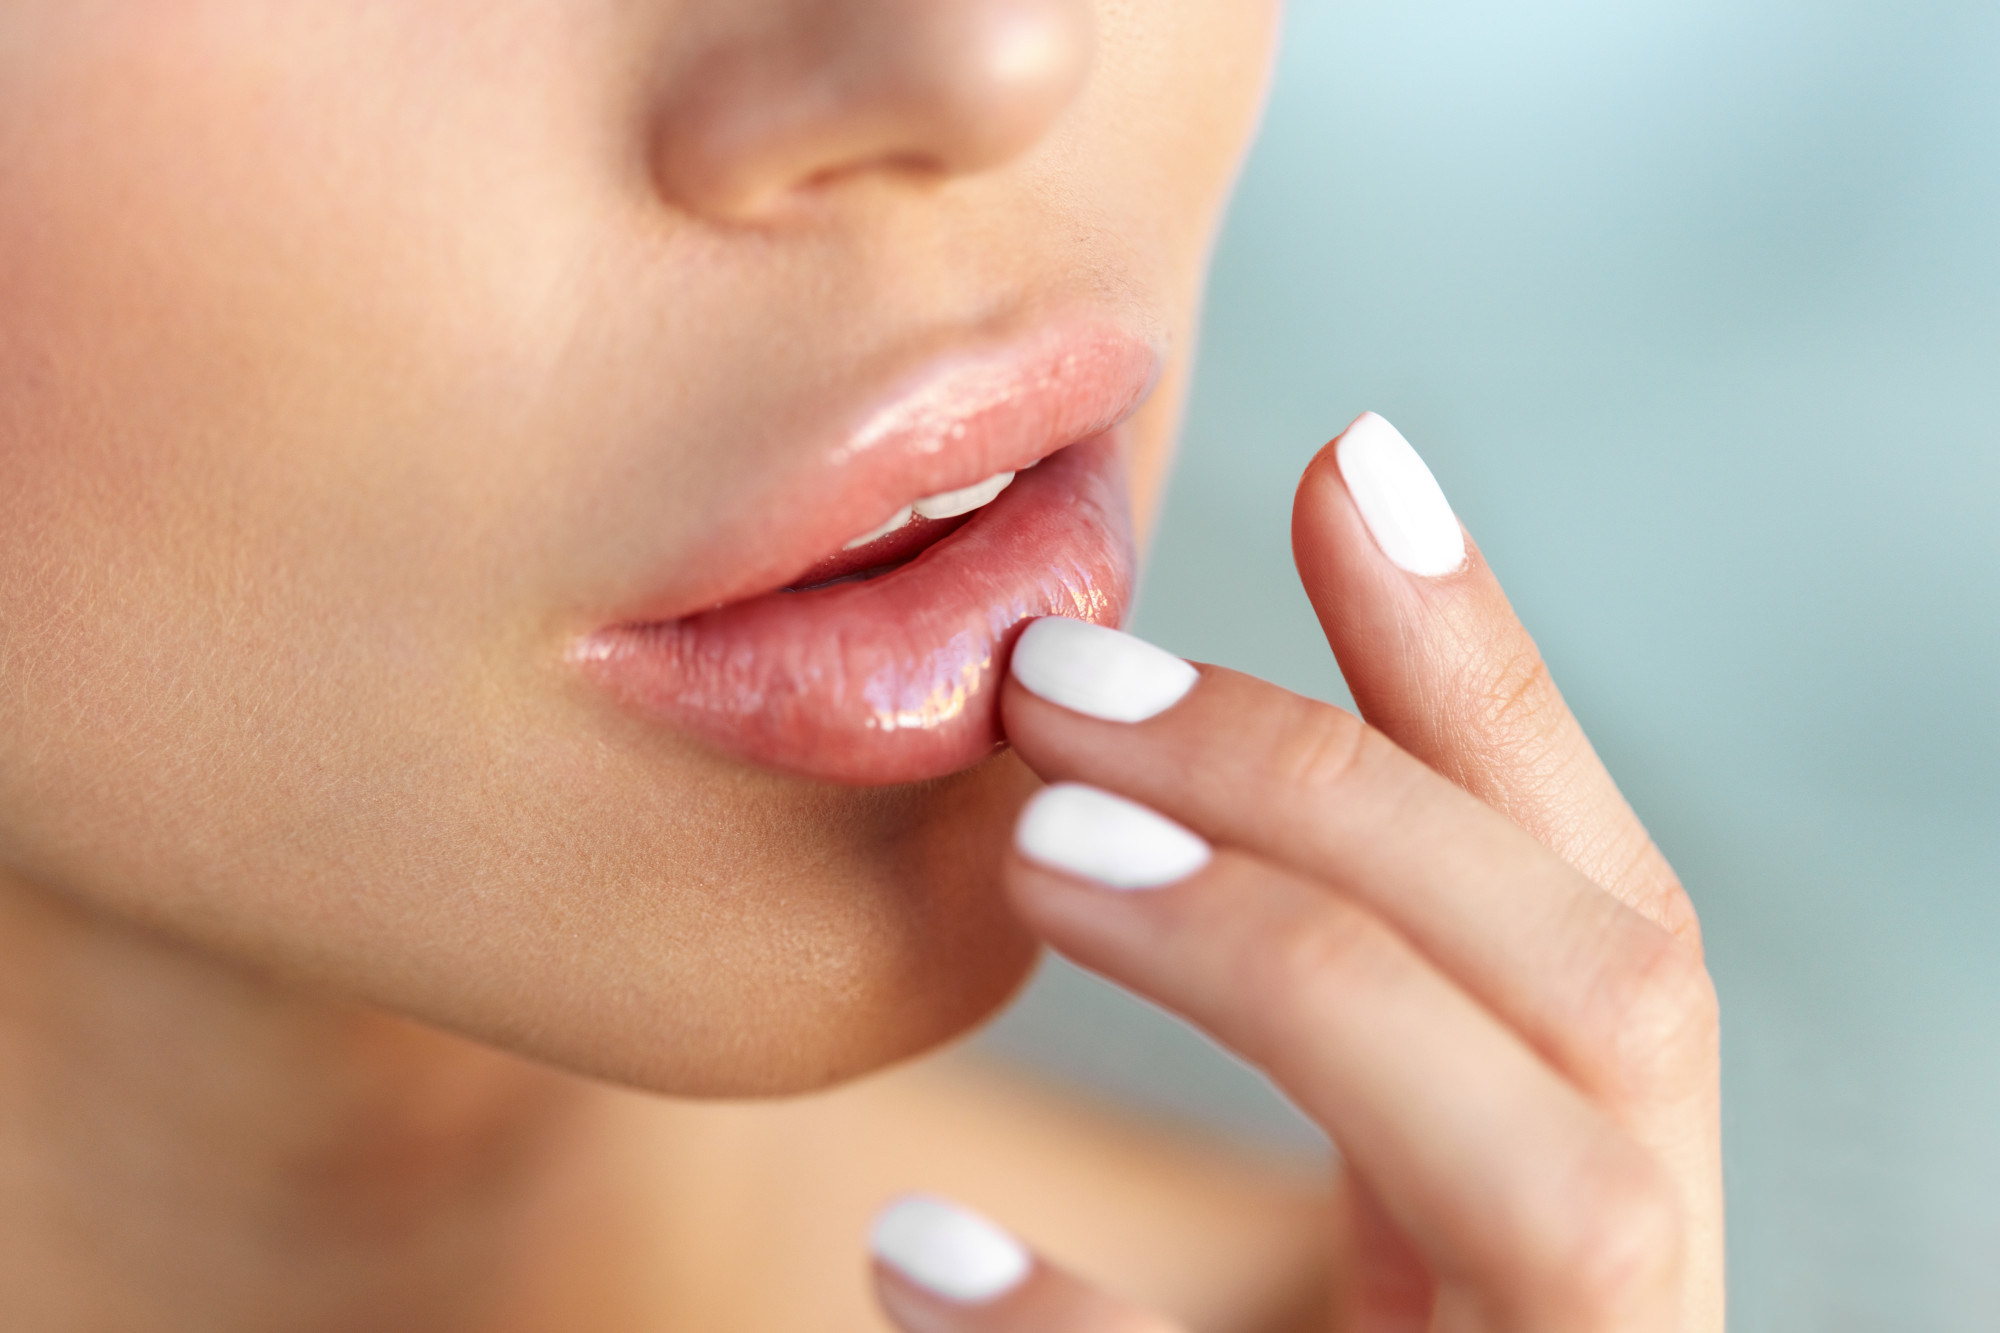 Filled to Perfection: Why We Love Natural Pouting Lips